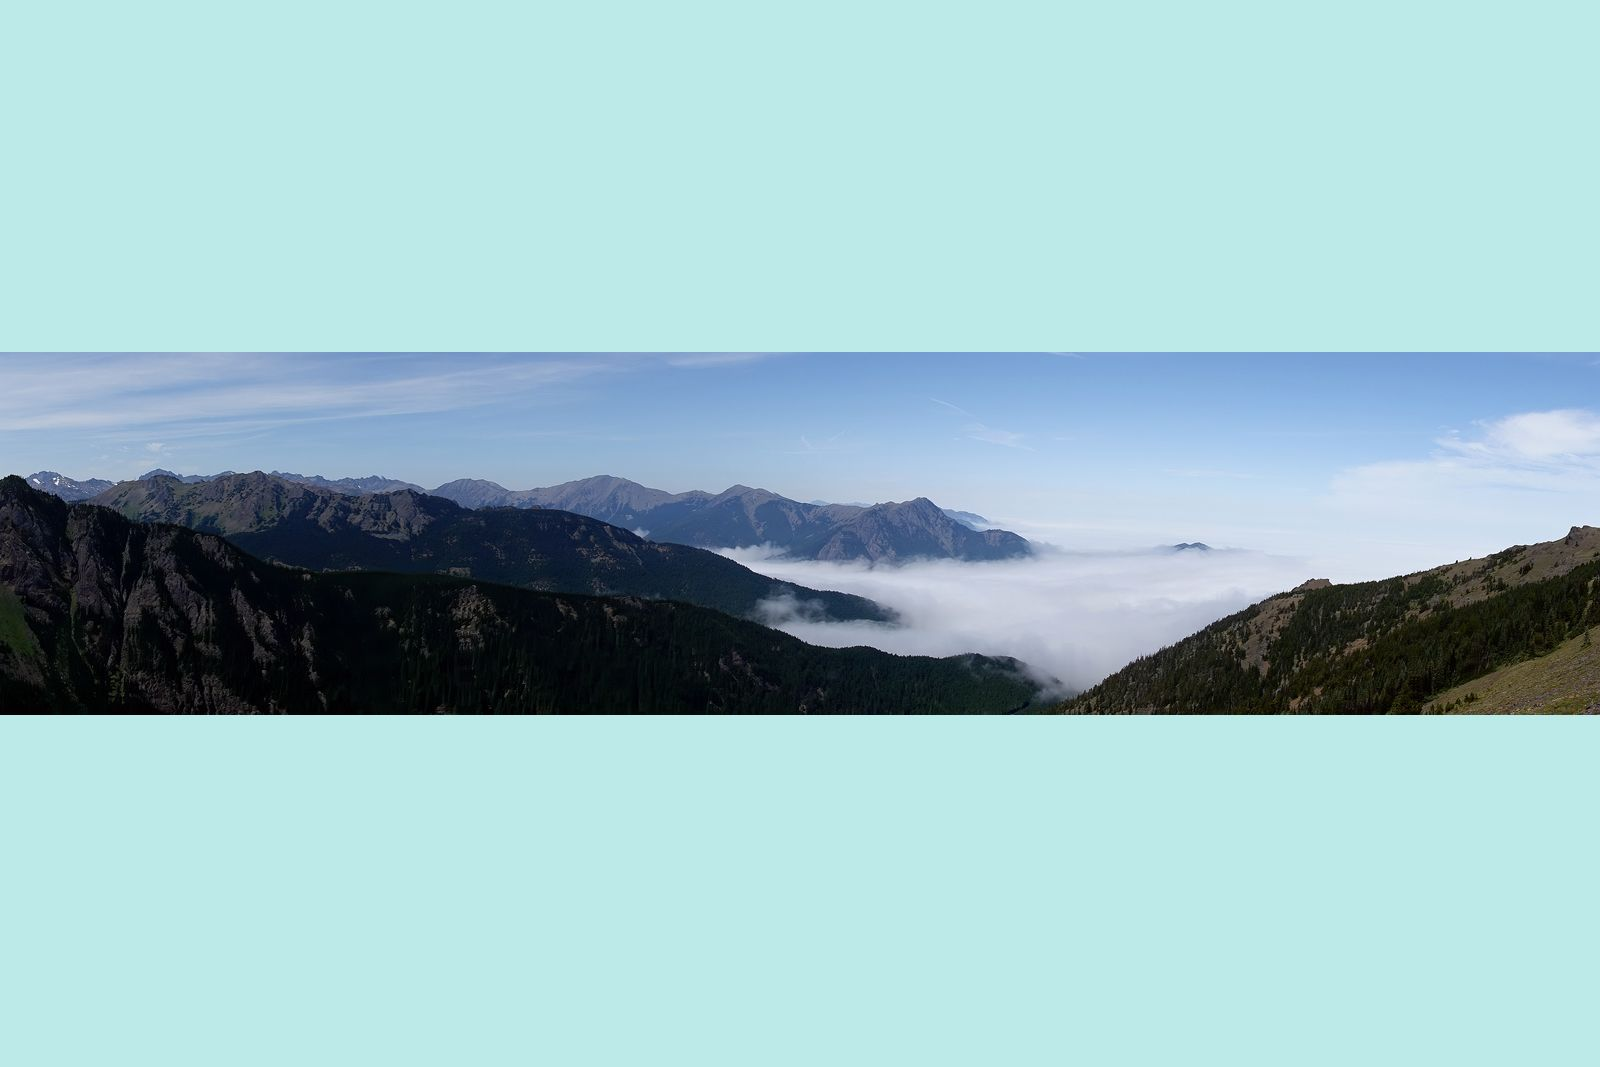 The view from near the top of Mount Townsend